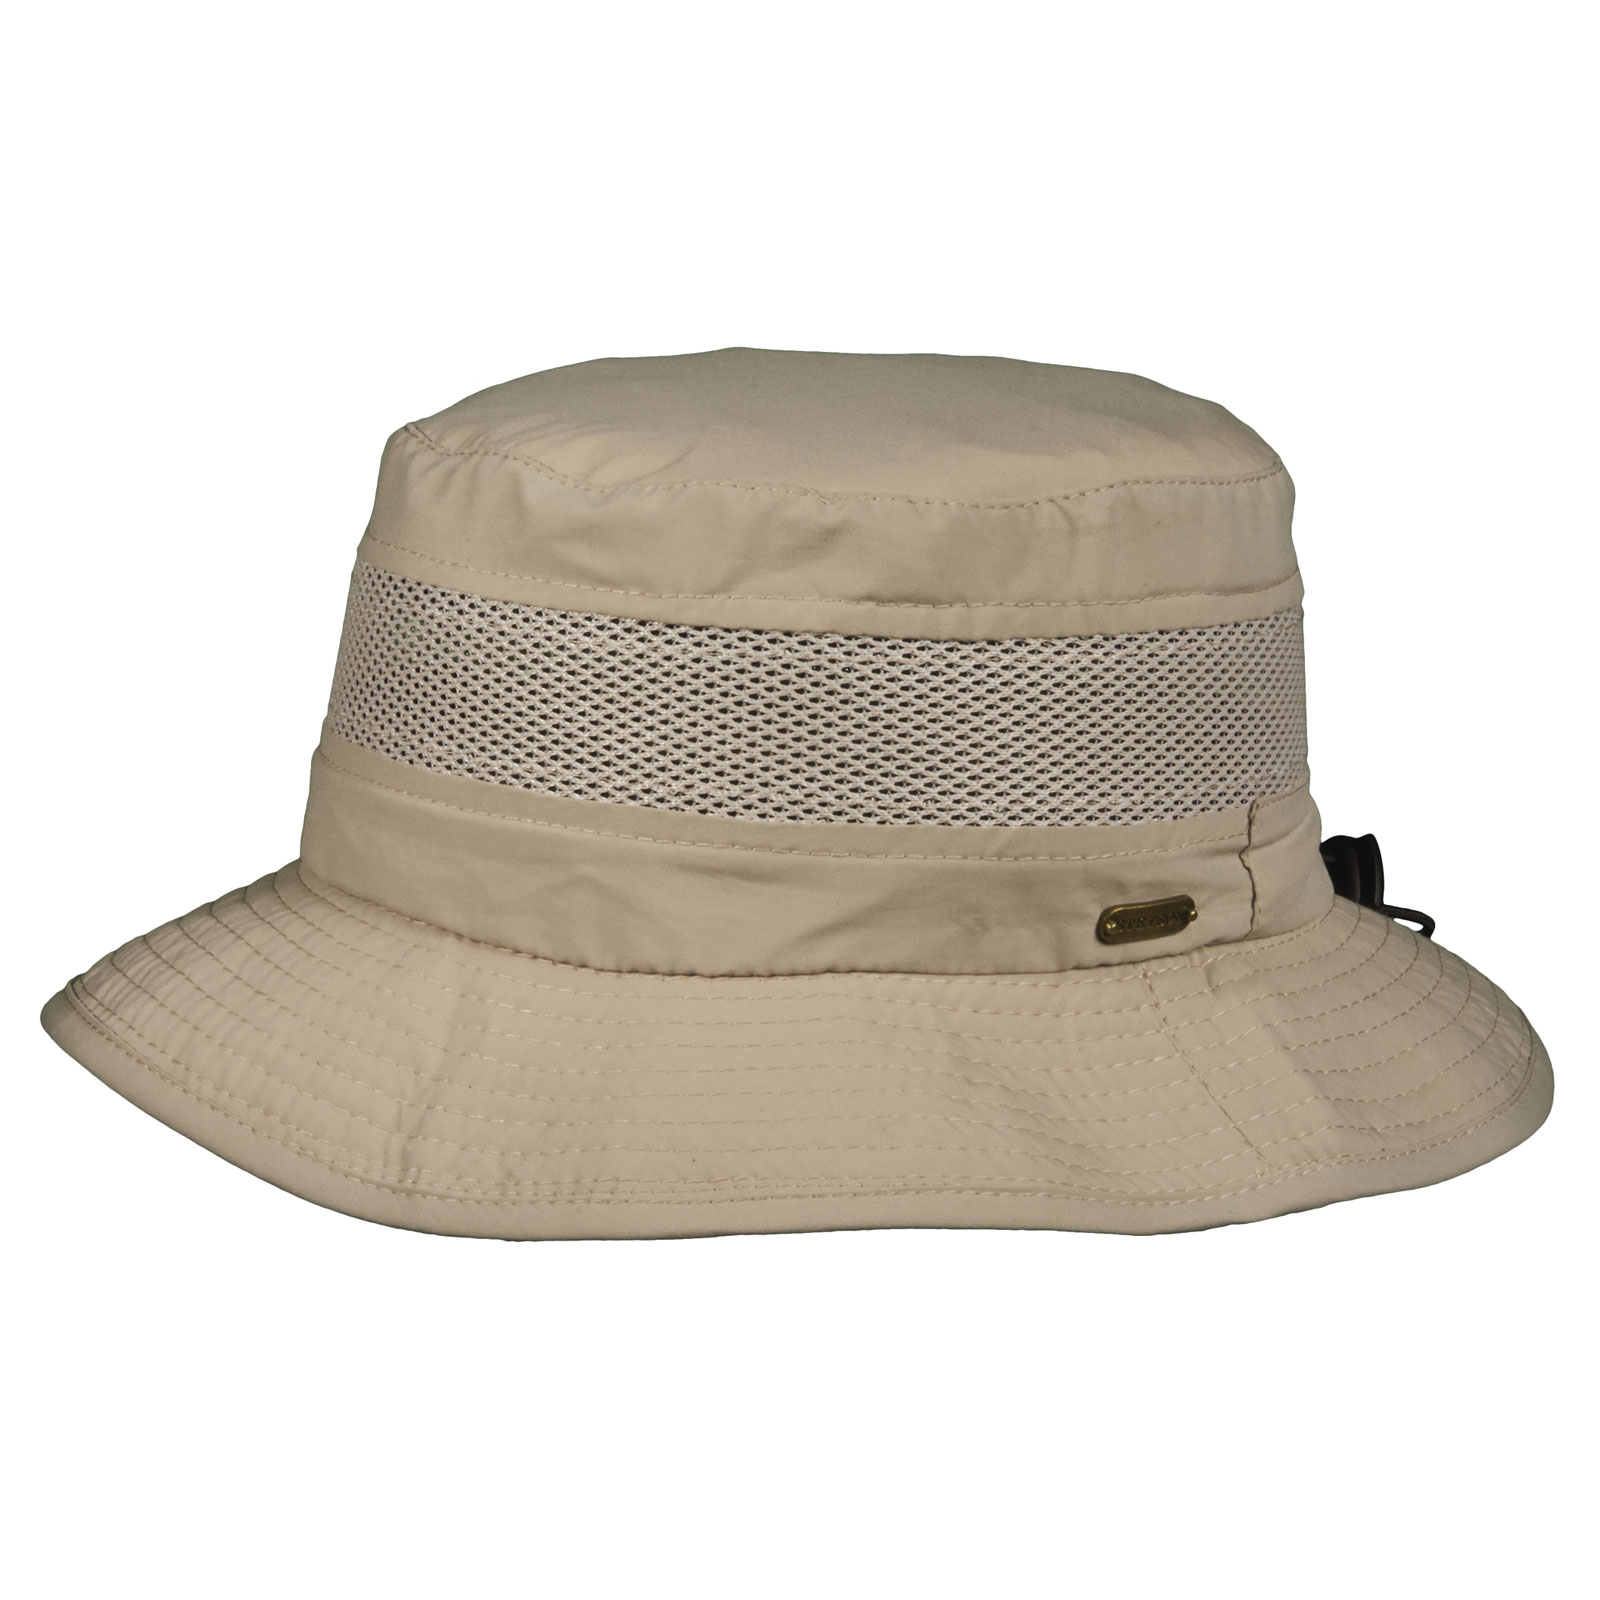 Stetson No Fly Zone Nylon Mesh Boonie Hat  423caa077a